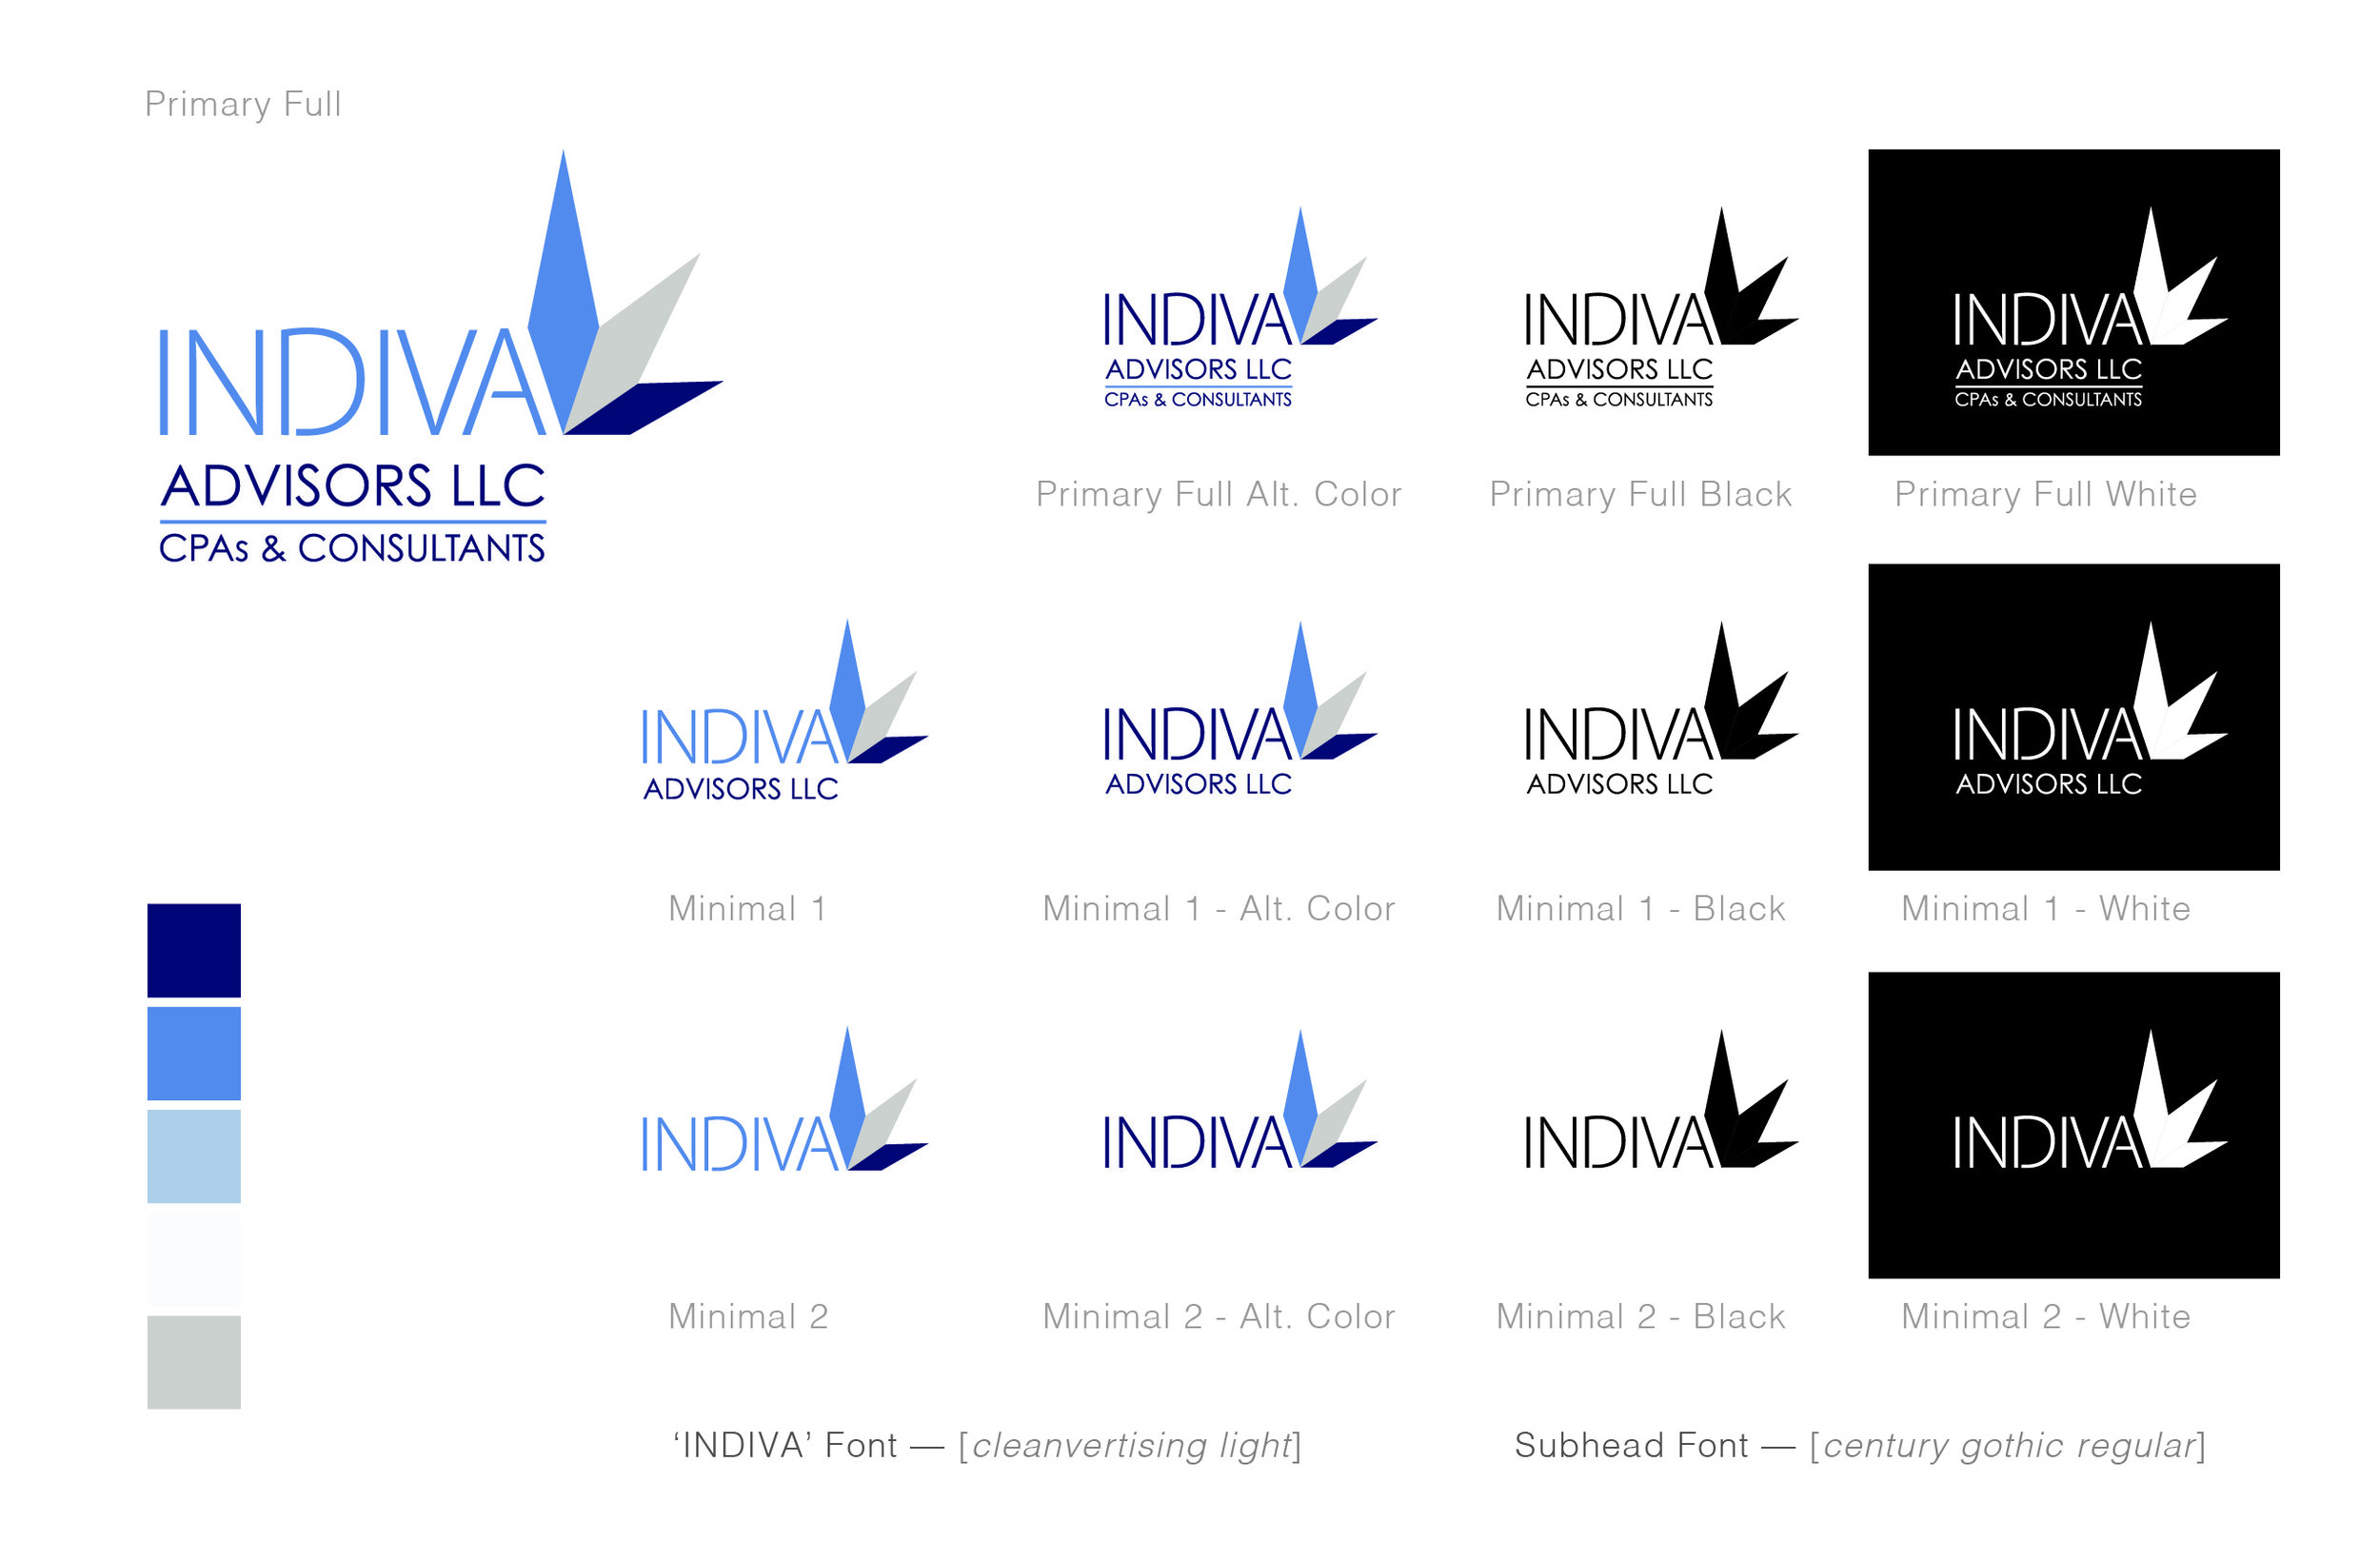 Identity Study - INDIVA: Cannabis Industry Accounting & Financial Services